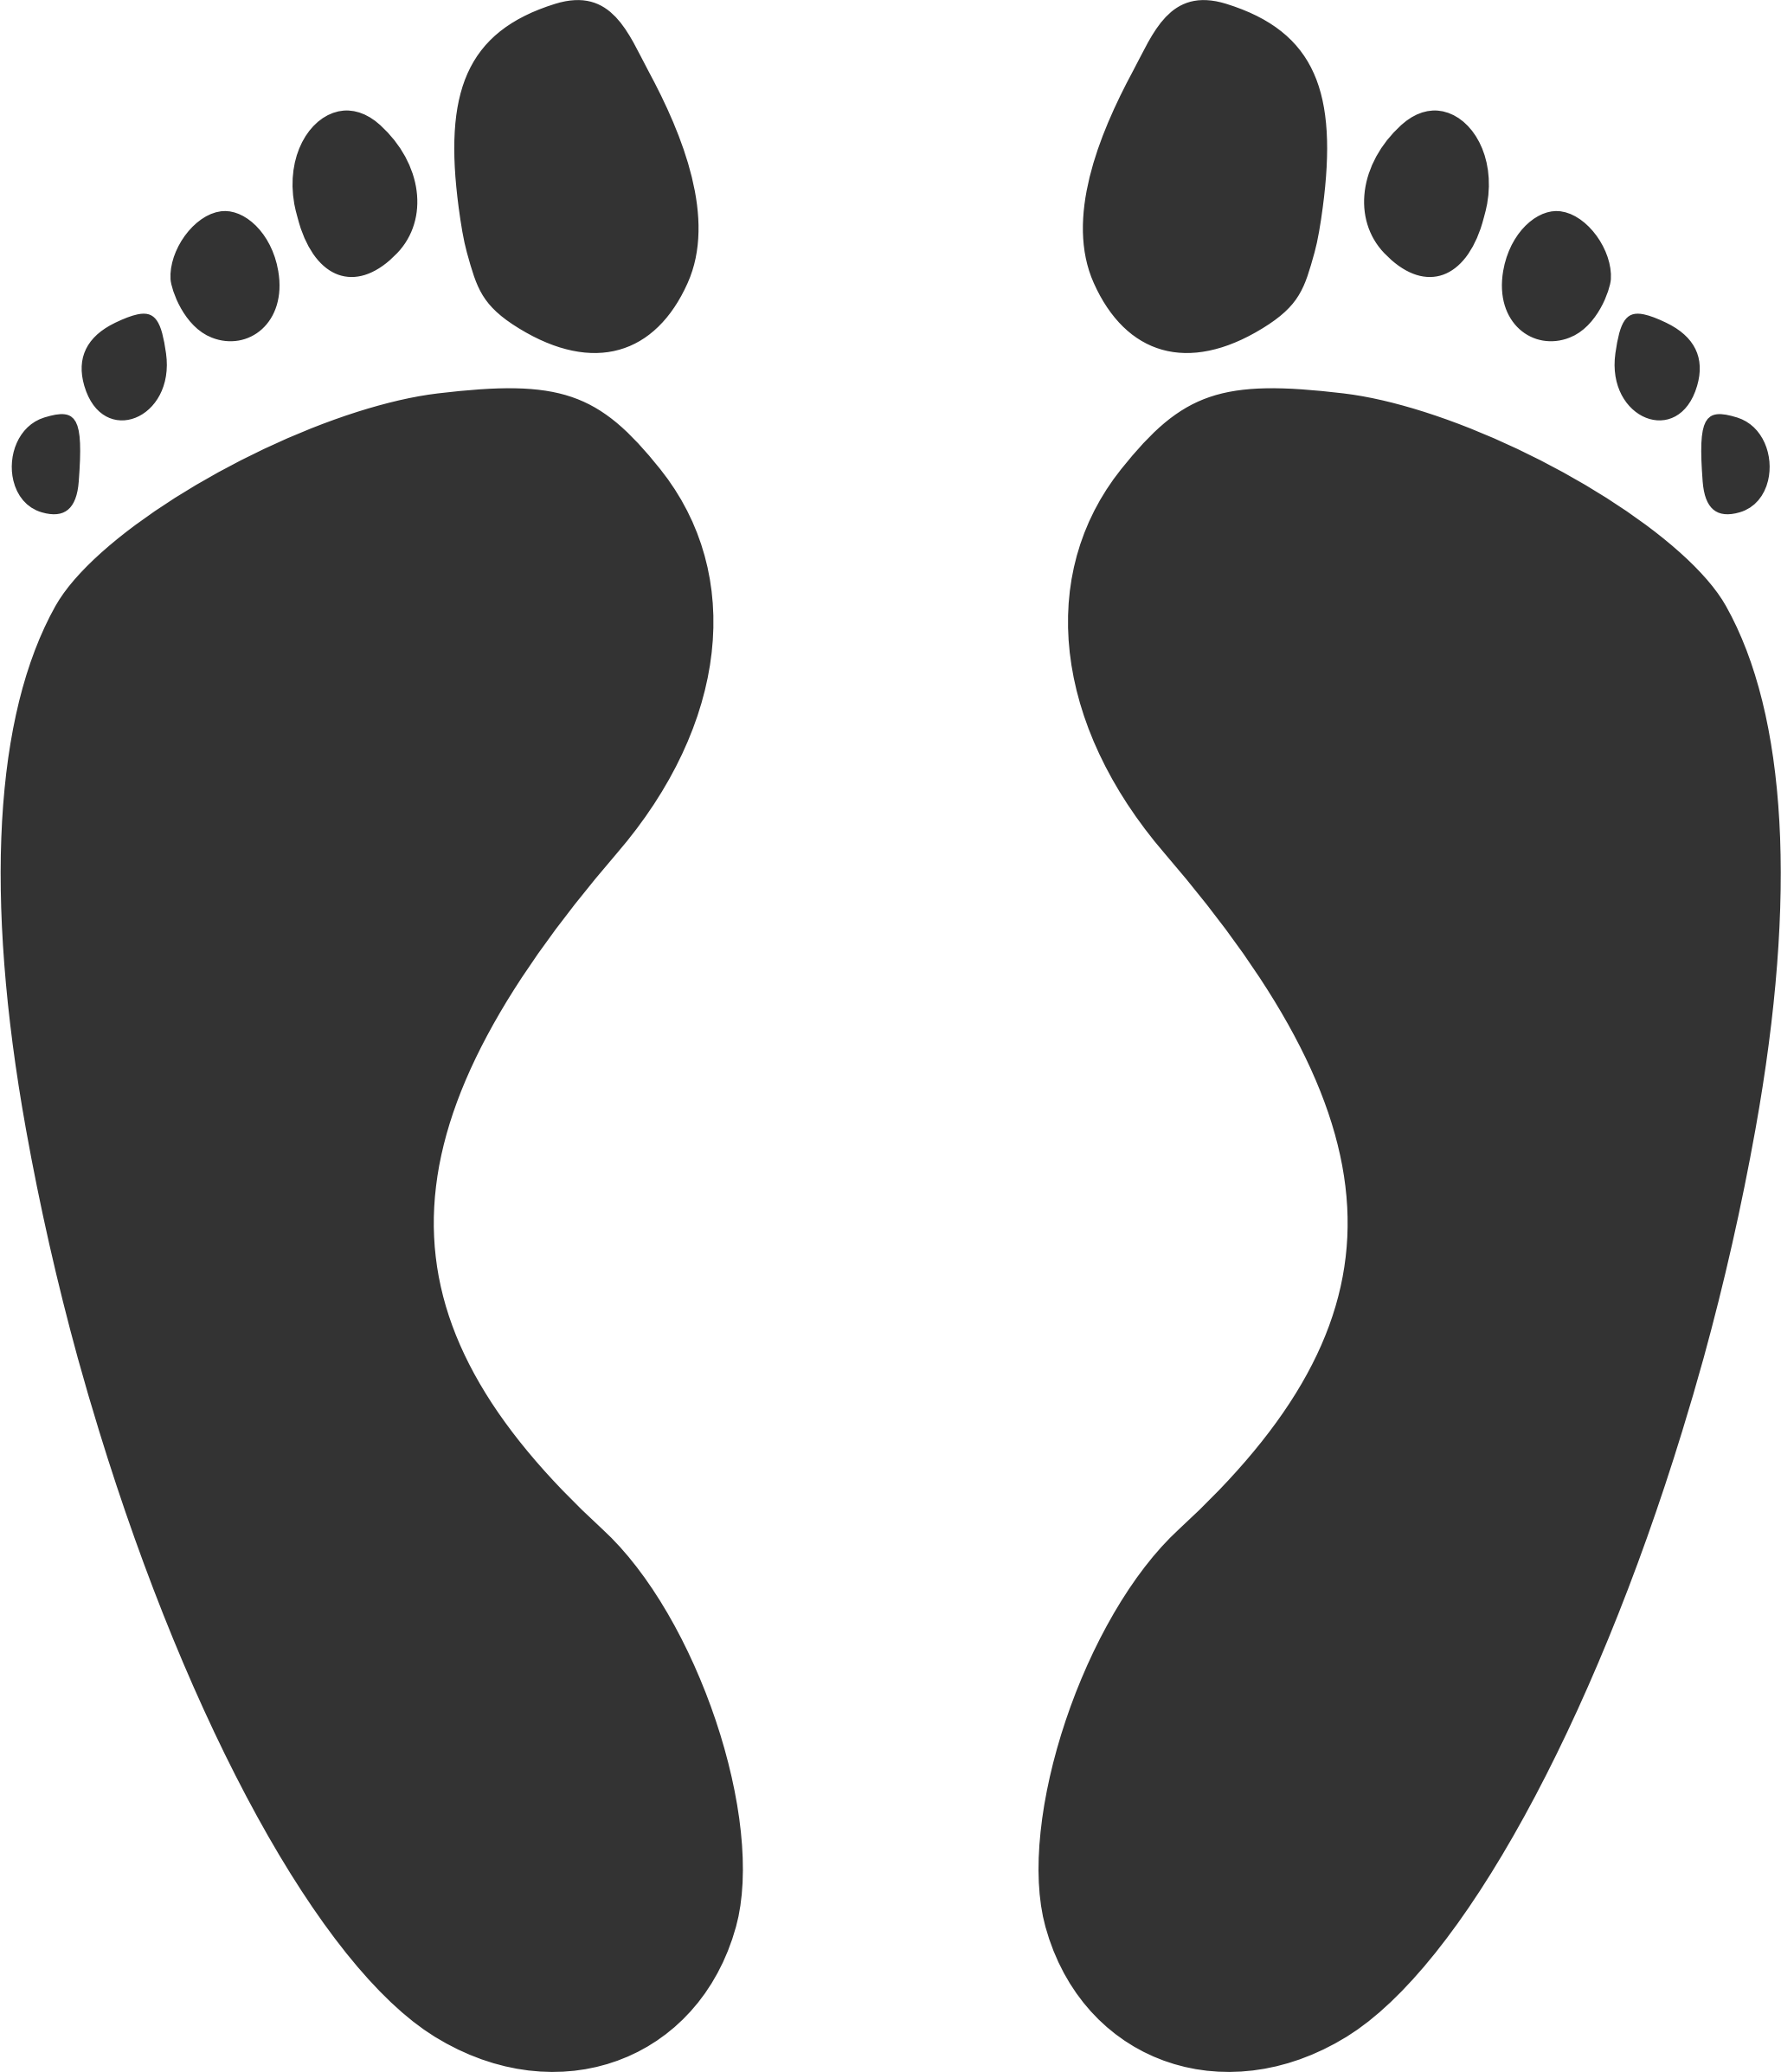 Feet png. Soles icons free and